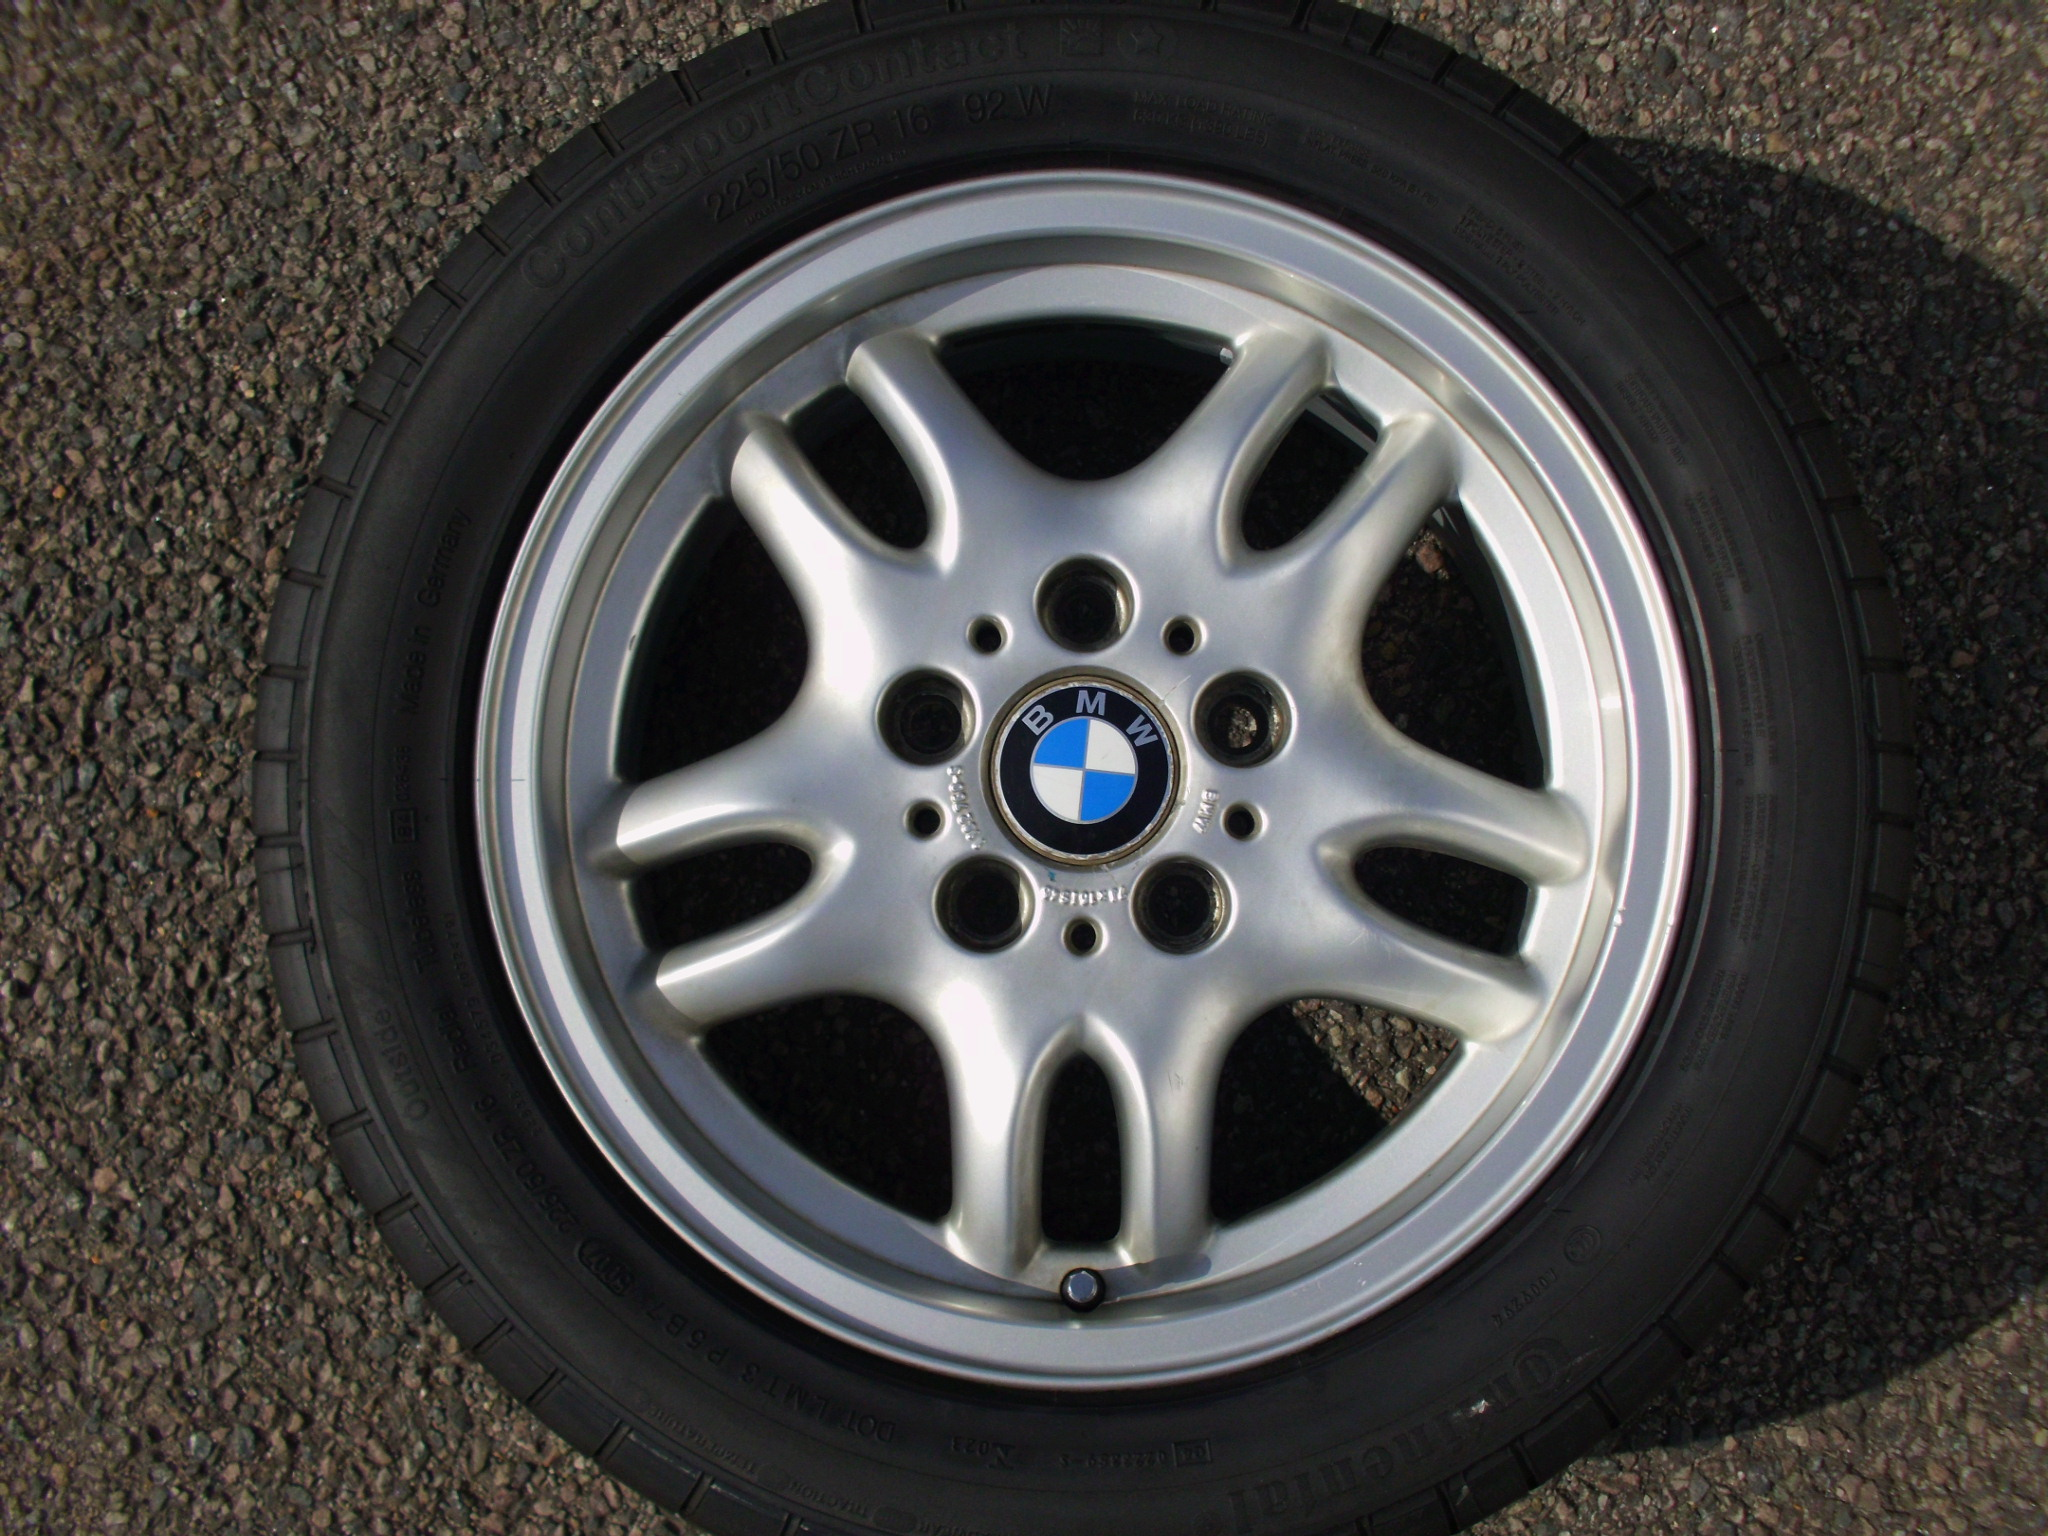 "USED SINGLE 16"" GENUINE BMW STYLE 30 5 TWIN SPOKE ALLOY WHEEL ,VGC,INC GOOD CONTINENTAL 225/50/16 TYRE"